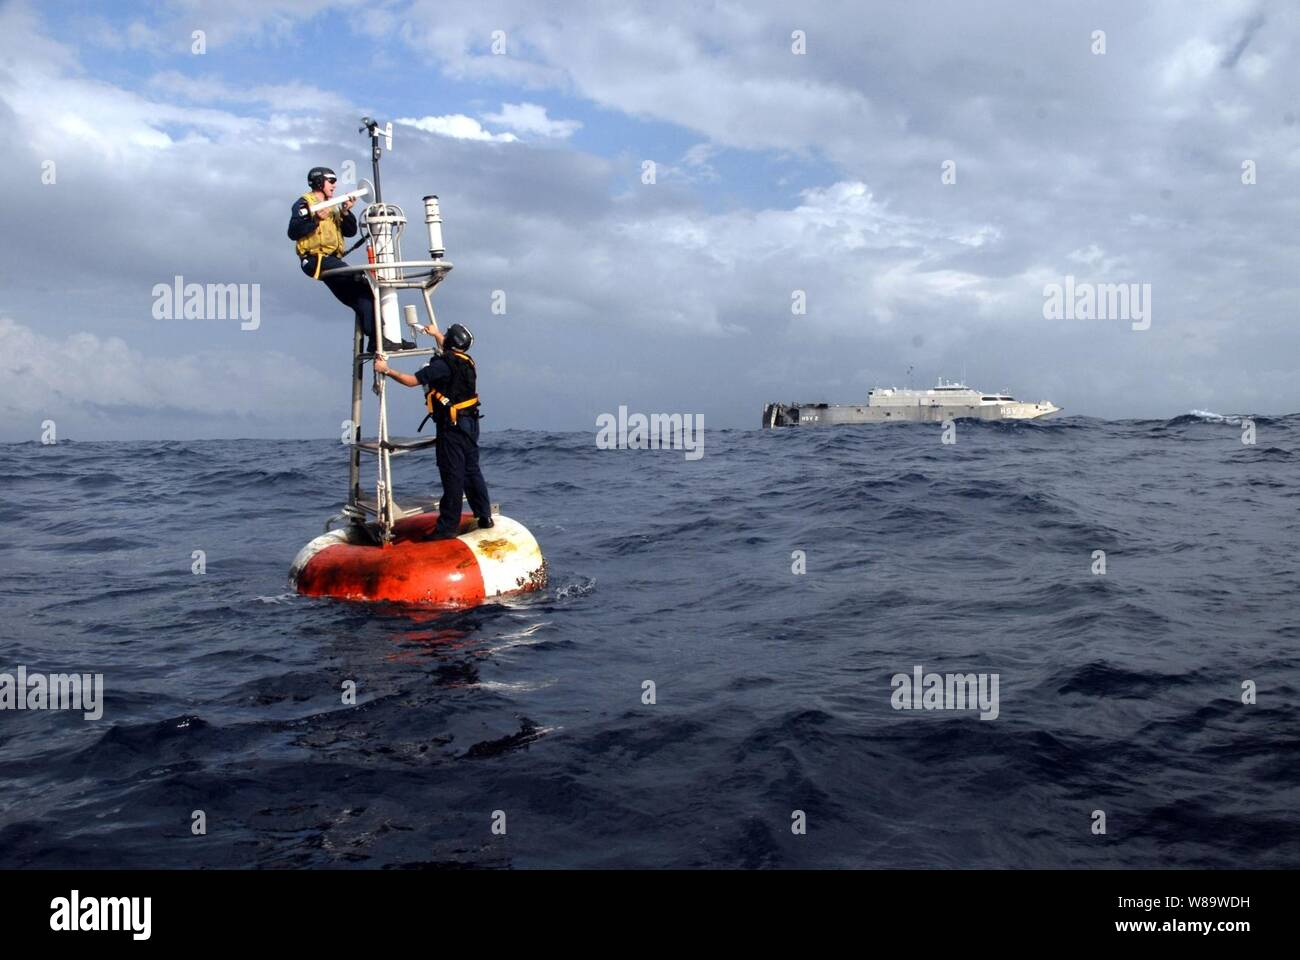 Noaa Vessel High Resolution Stock Photography And Images Alamy